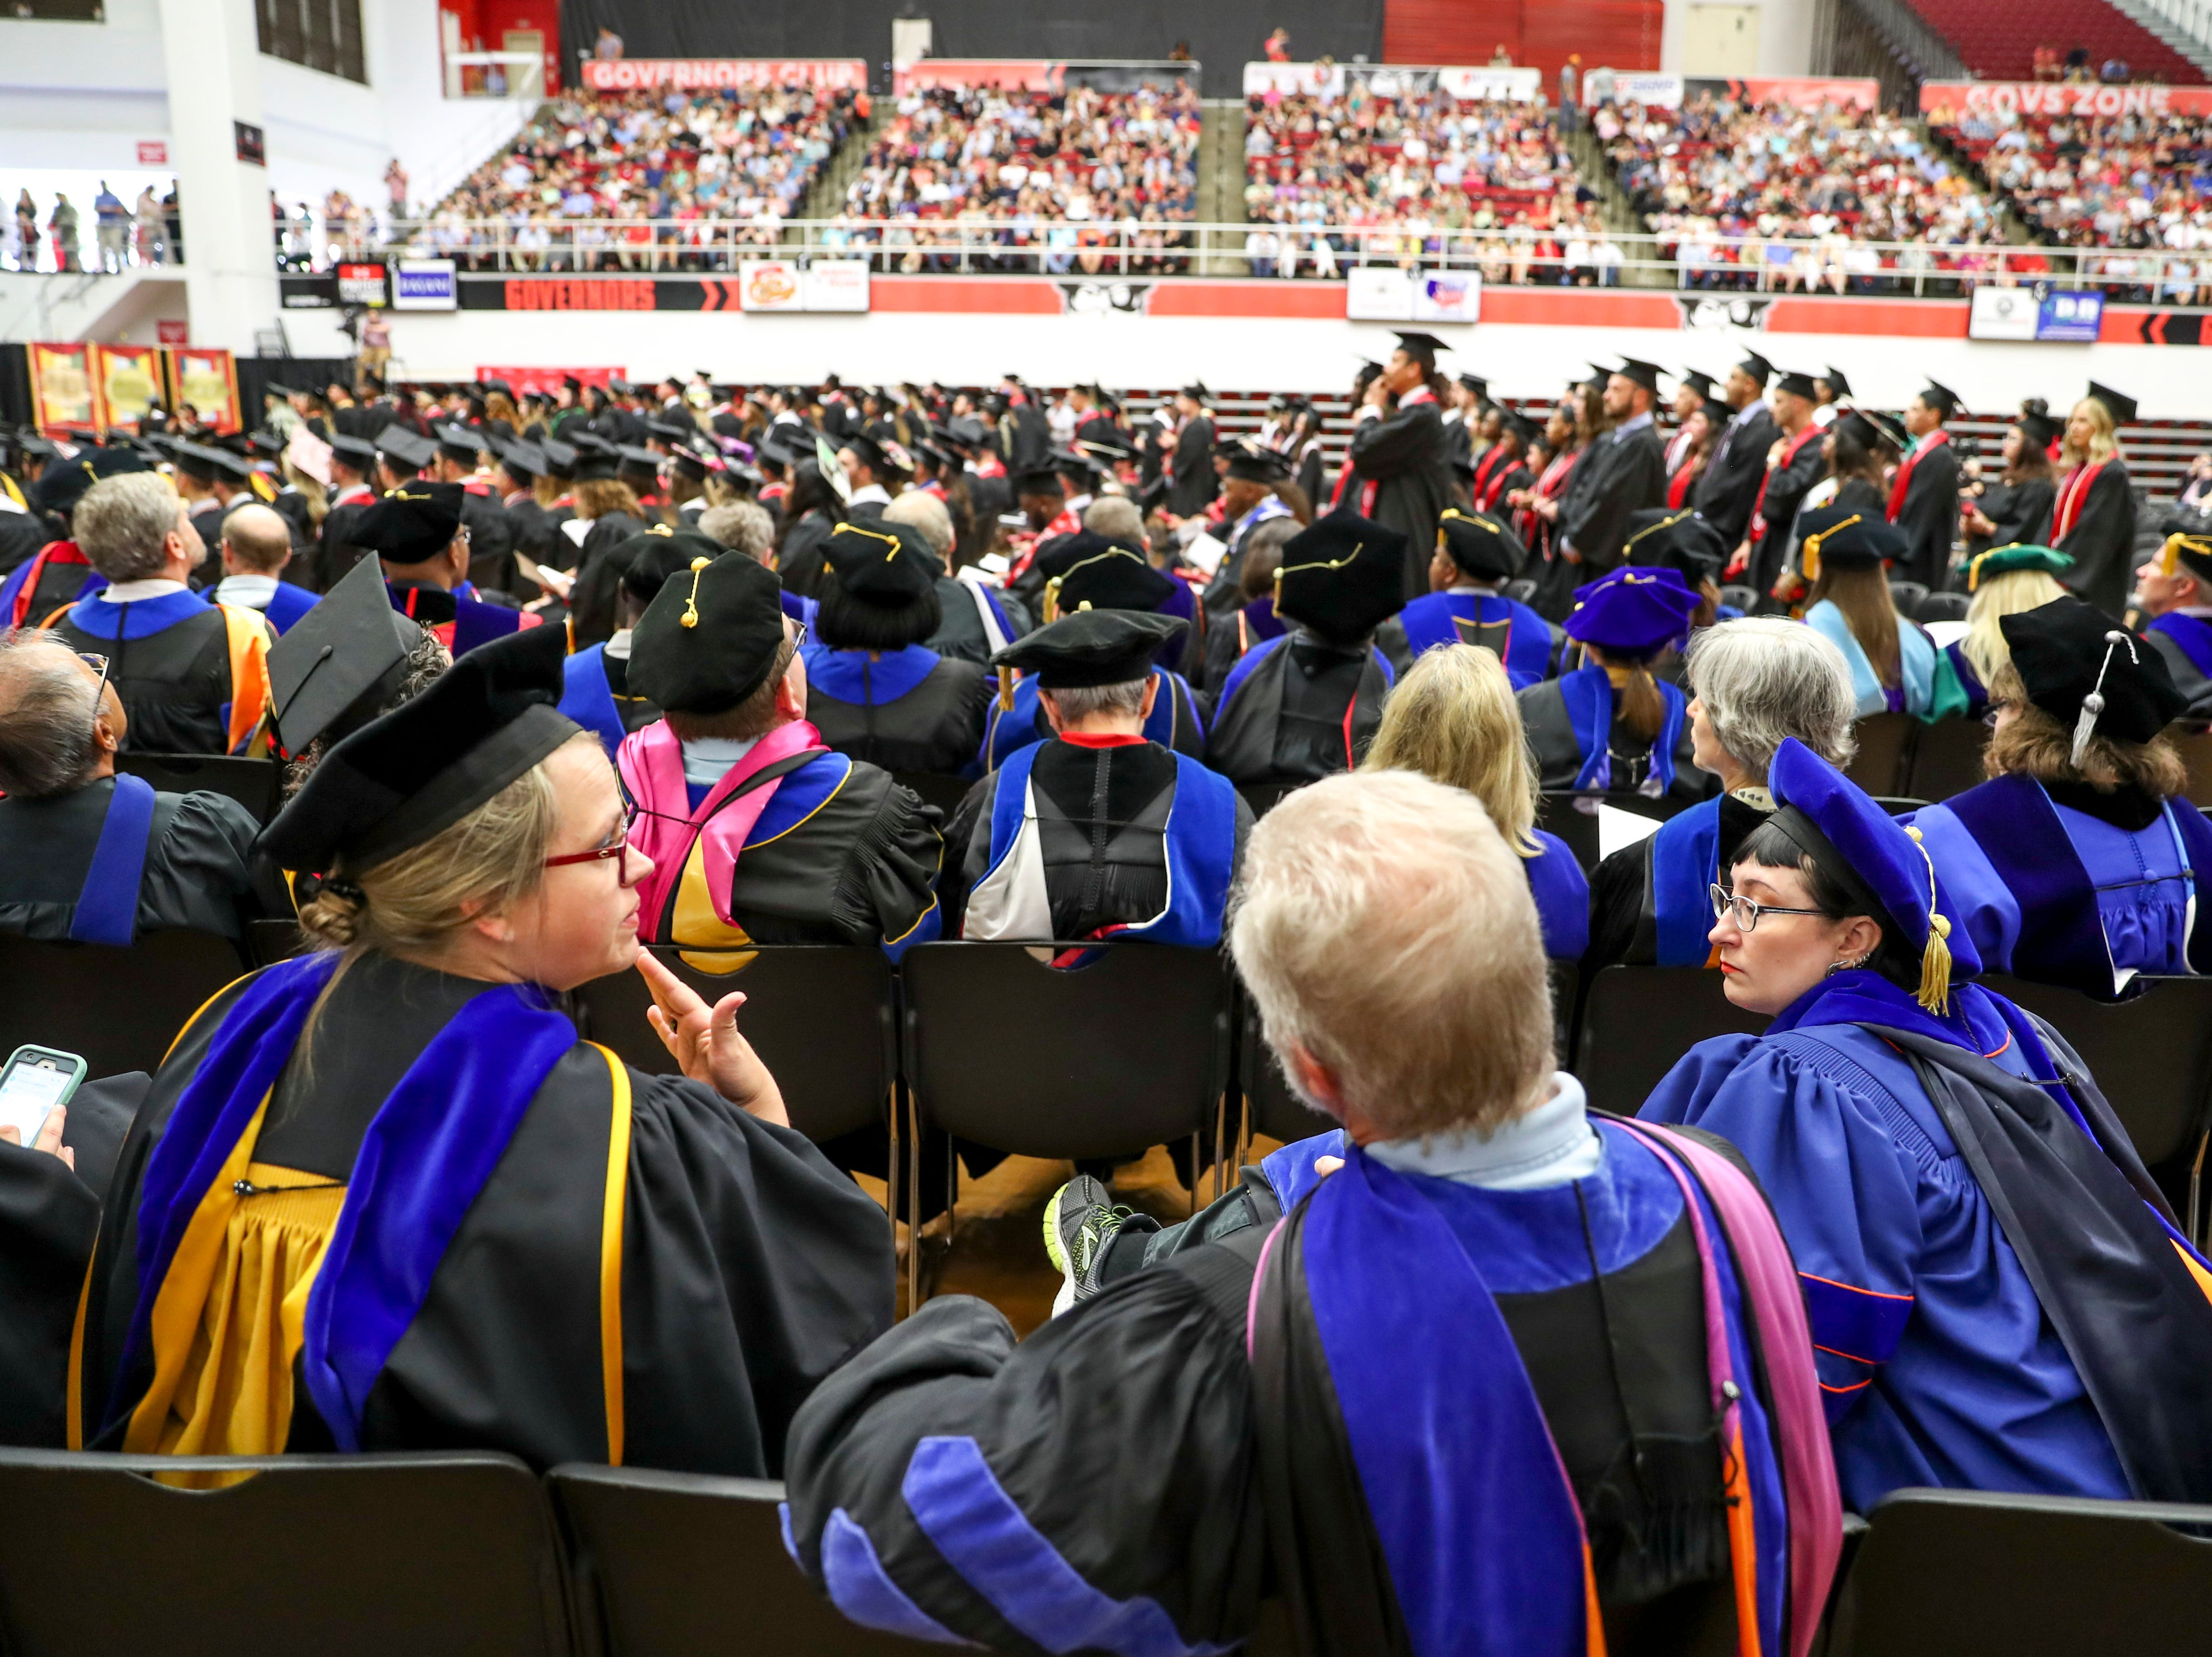 Faculty chat with one another while students are presented diplomas at the Austin Peay spring commencement ceremony 2019 for College of Business and College of STEM at Winfield Dunn Center in Clarksville, Tenn., on Friday, May 3, 2019.